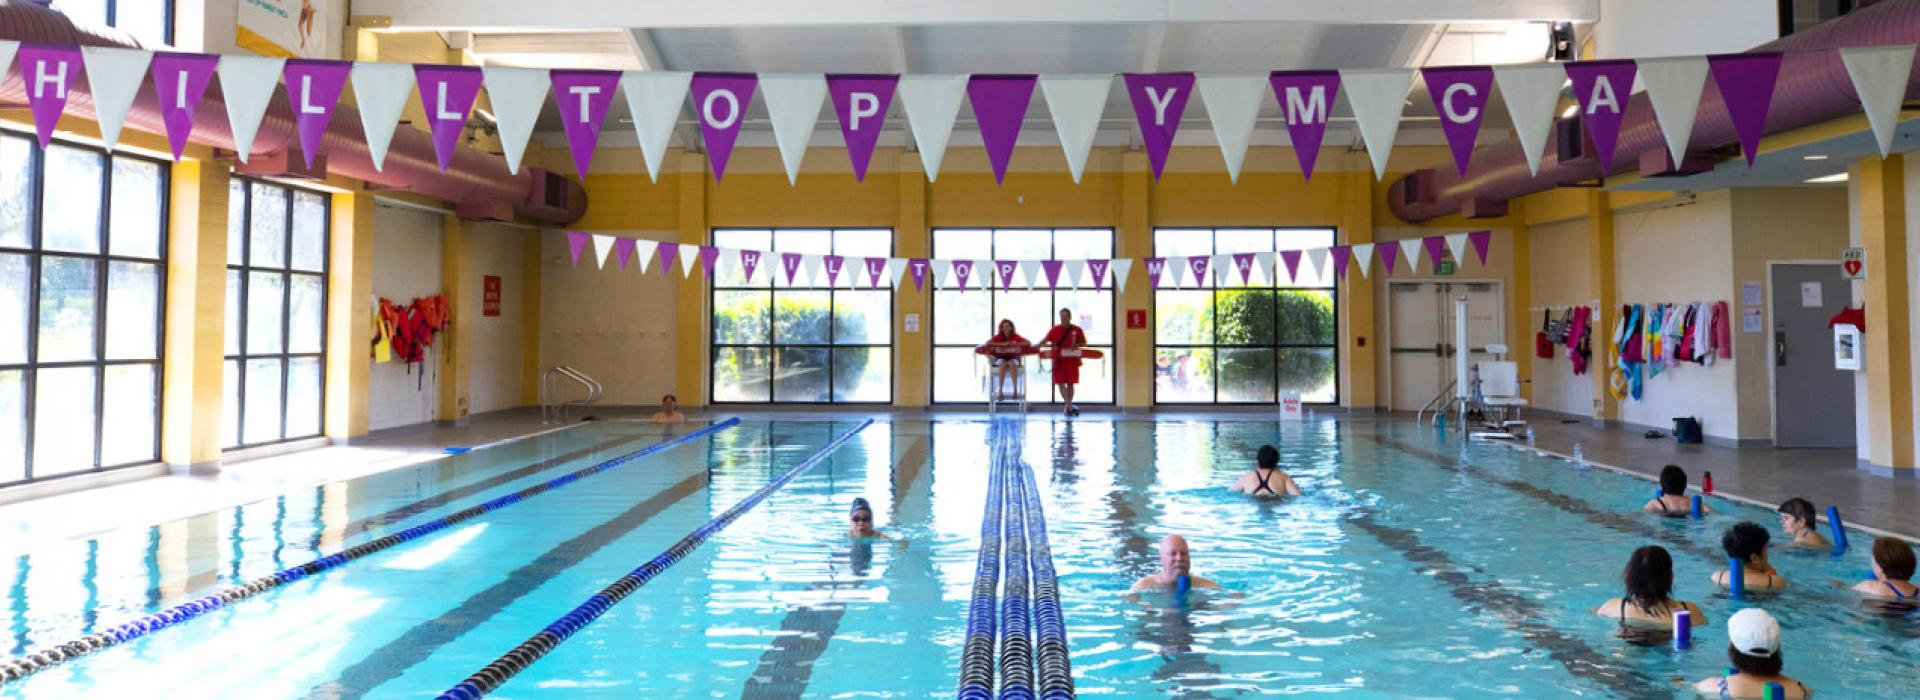 Visit hilltop ymca located at 4300 lakeside drive richmond - Centennial swimming pool richmond hill ...